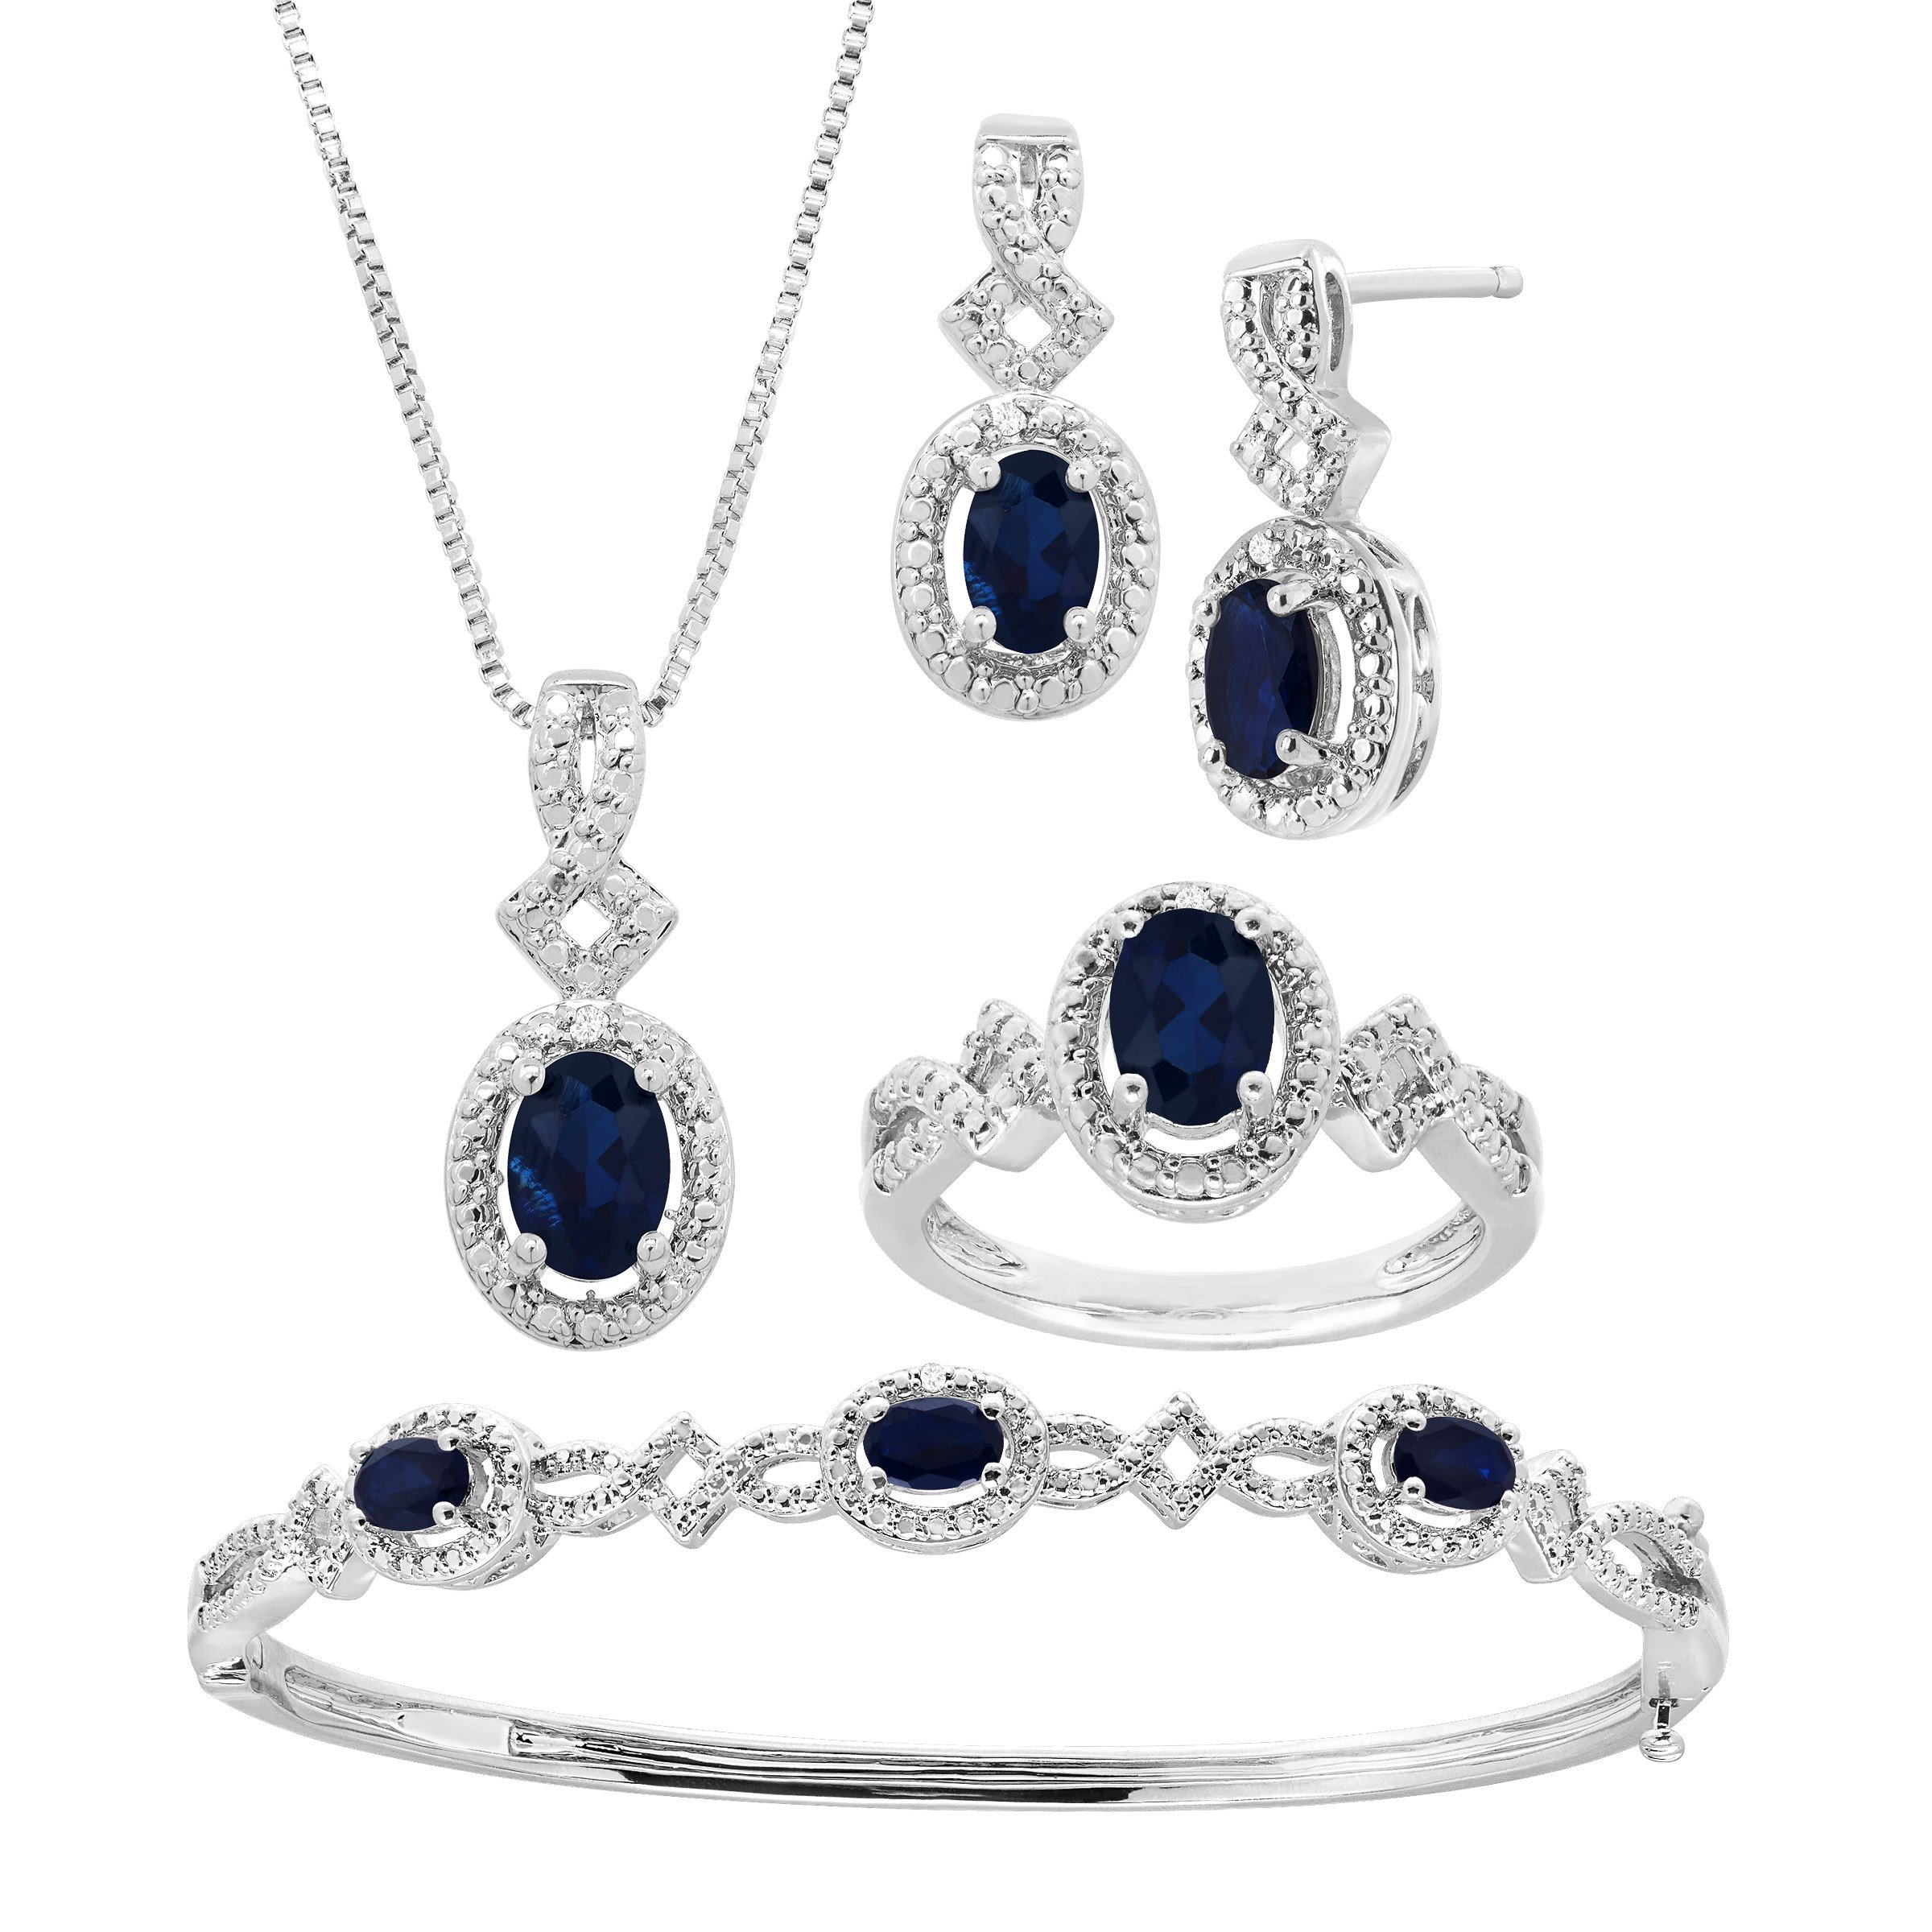 5 ct Created Sapphire Pendant, Bracelet, Earring & Ring Set with Diamonds in 14K White Gold-Plated Brass